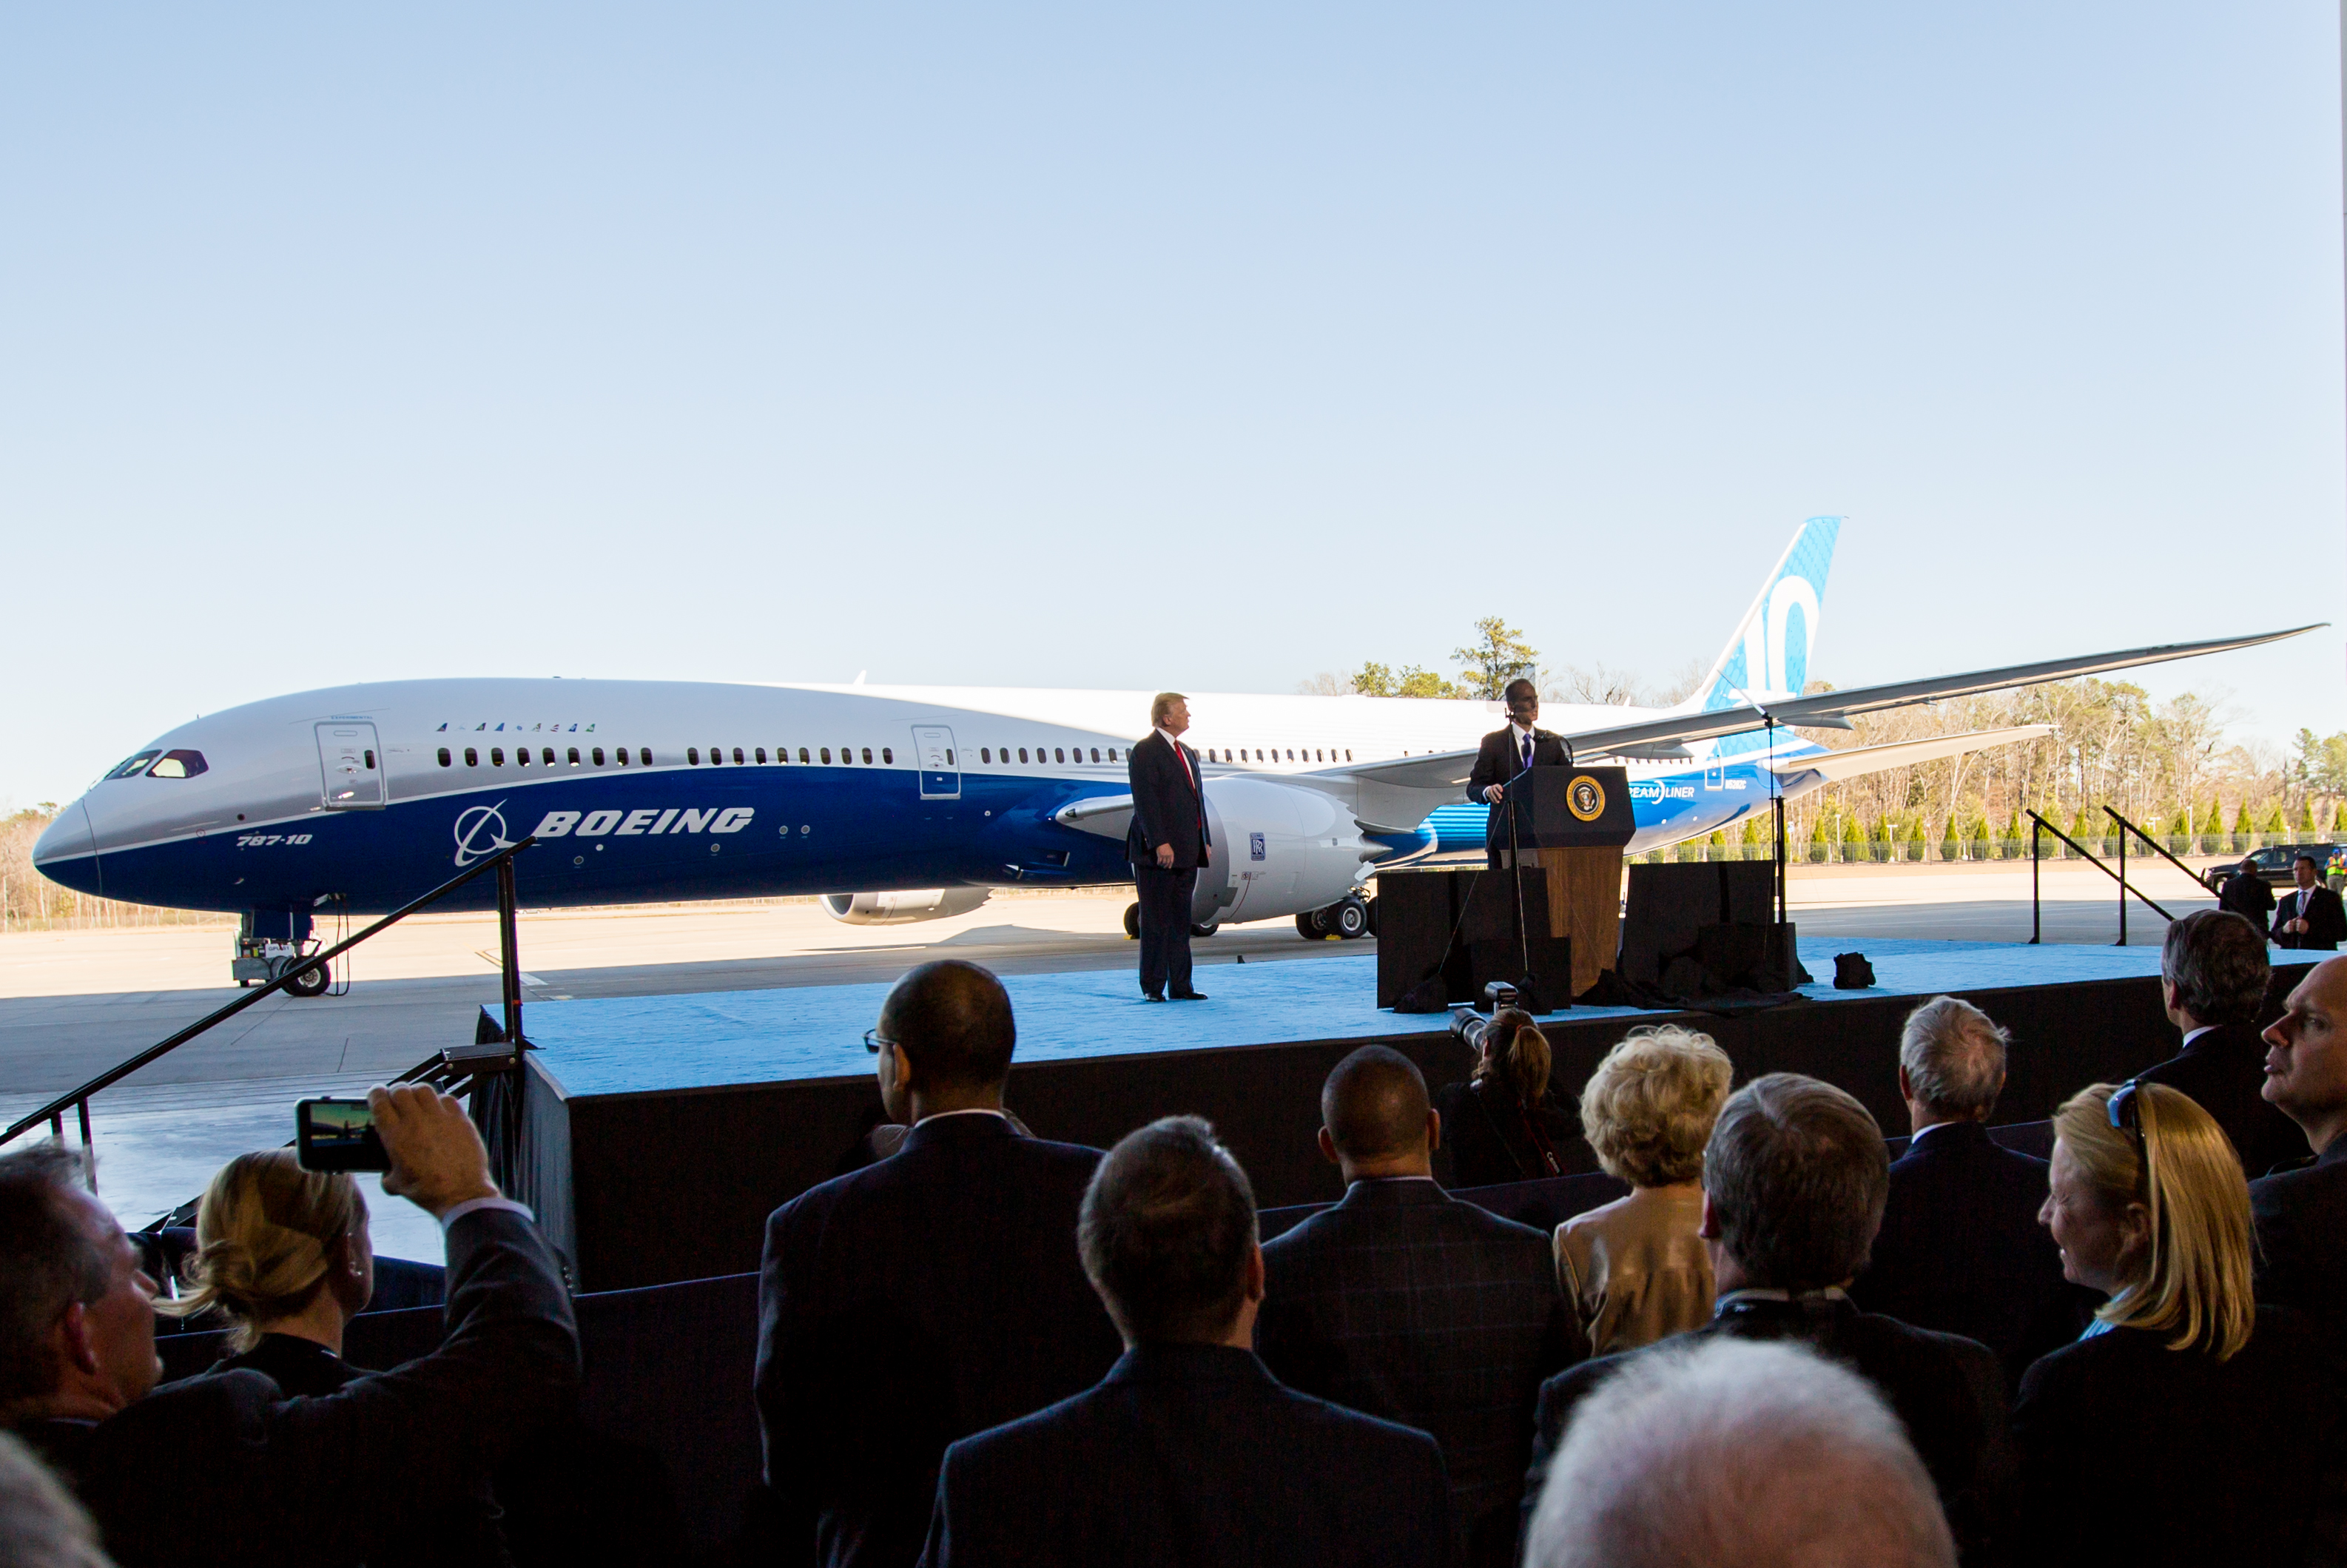 Boeing_787-10_rollout_with_President_Trump_(32335755473)_(cropped)